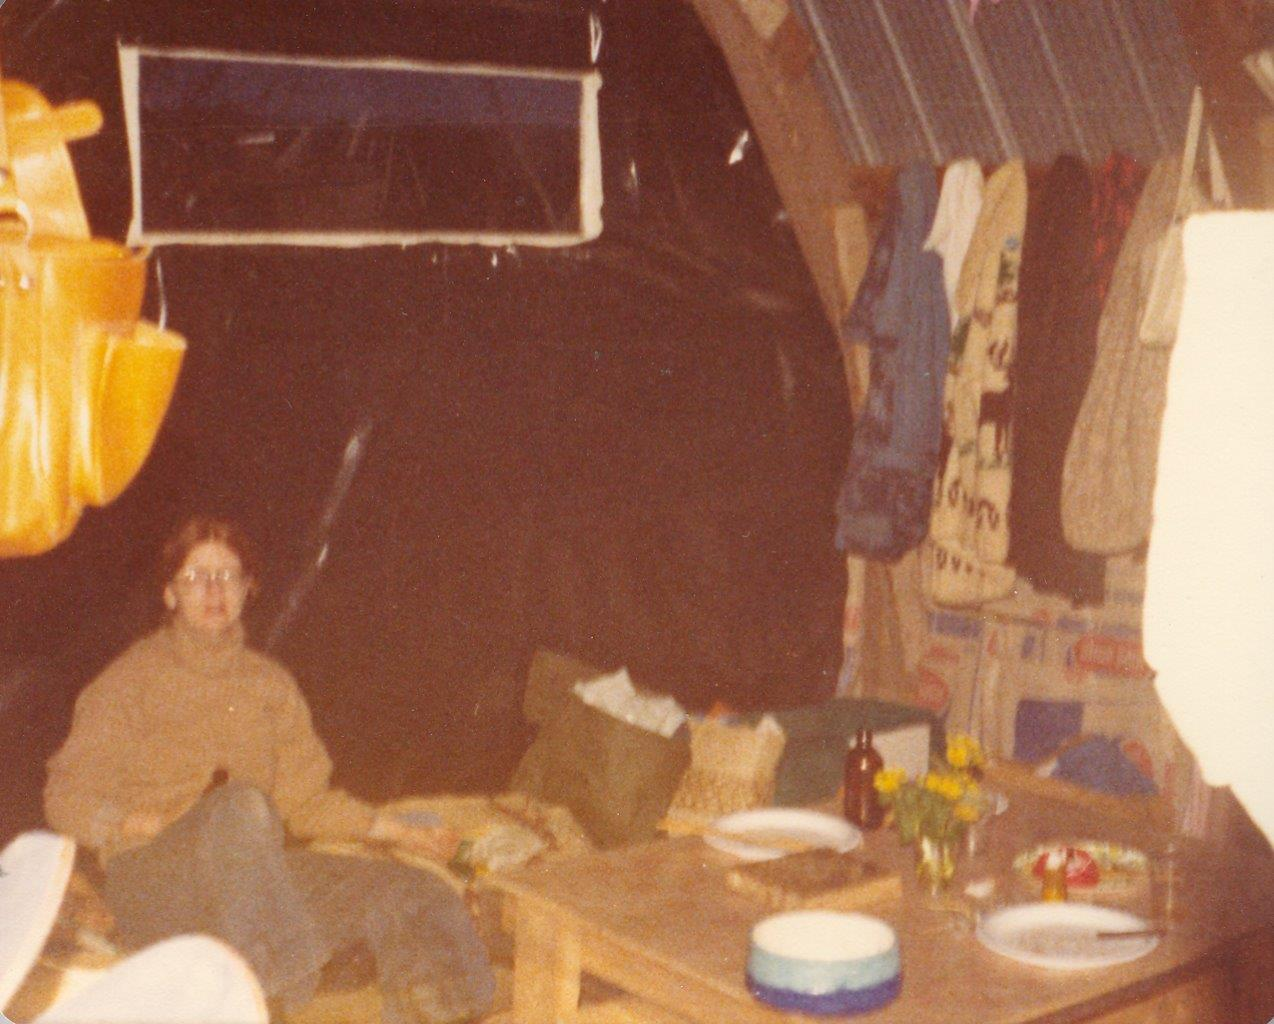 198005xx-ra-005-Barb In Barn-Randboro